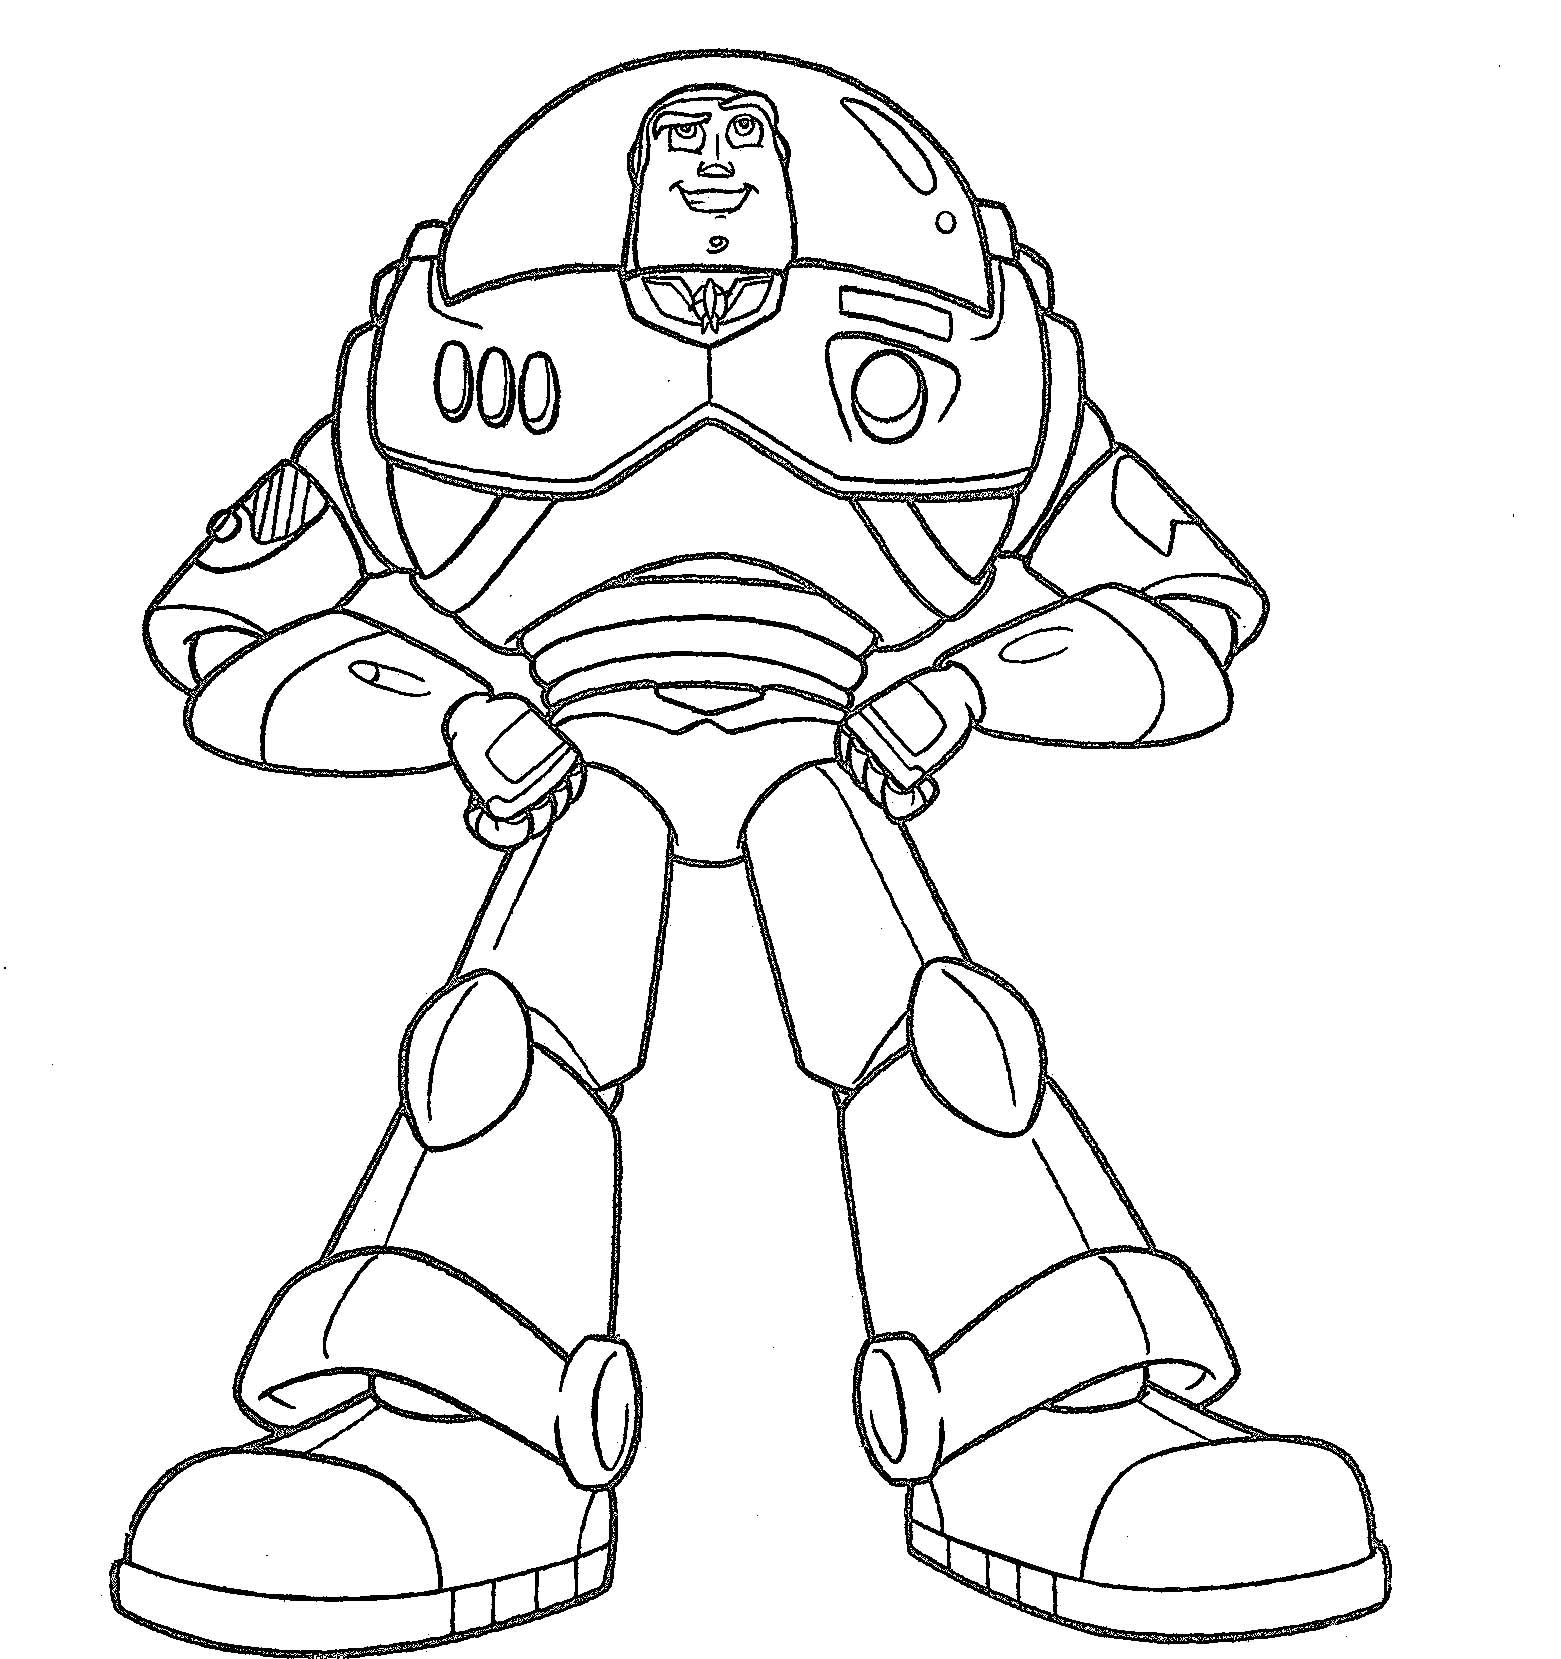 top 25 ideas about toy story coloring pages on ps buzz lightyear - Buzz Lightyear Face Coloring Pages